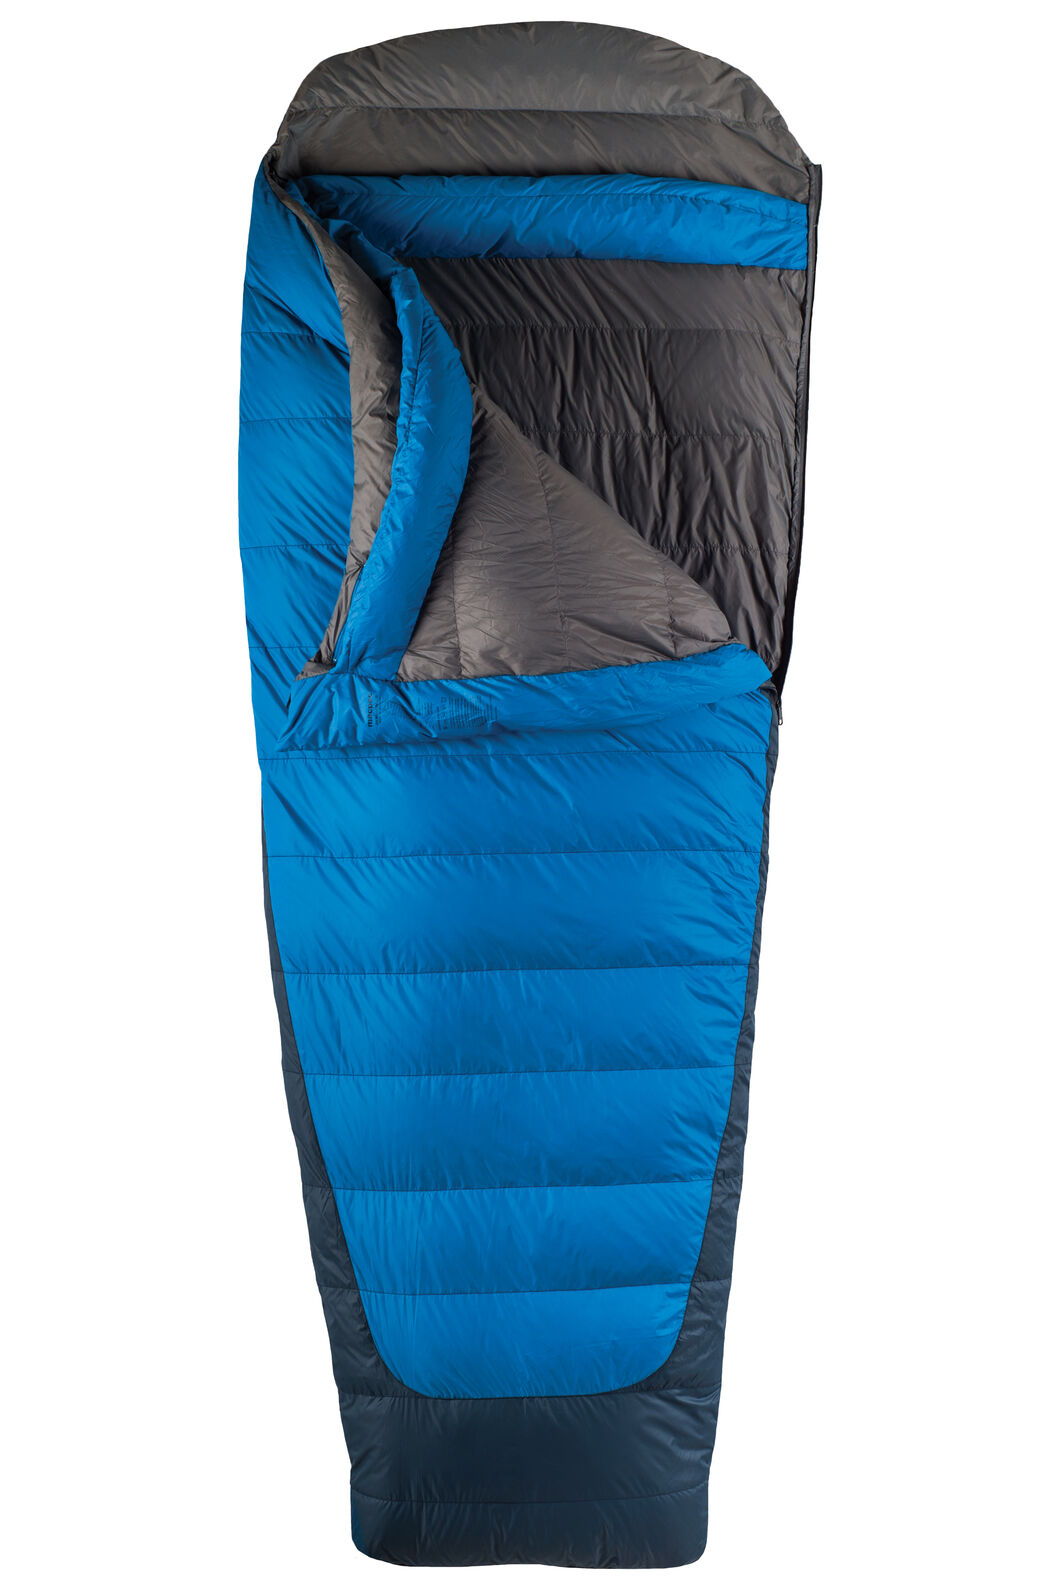 Escapade Down 700 Sleeping Bag - Standard, Classic Blue, hi-res